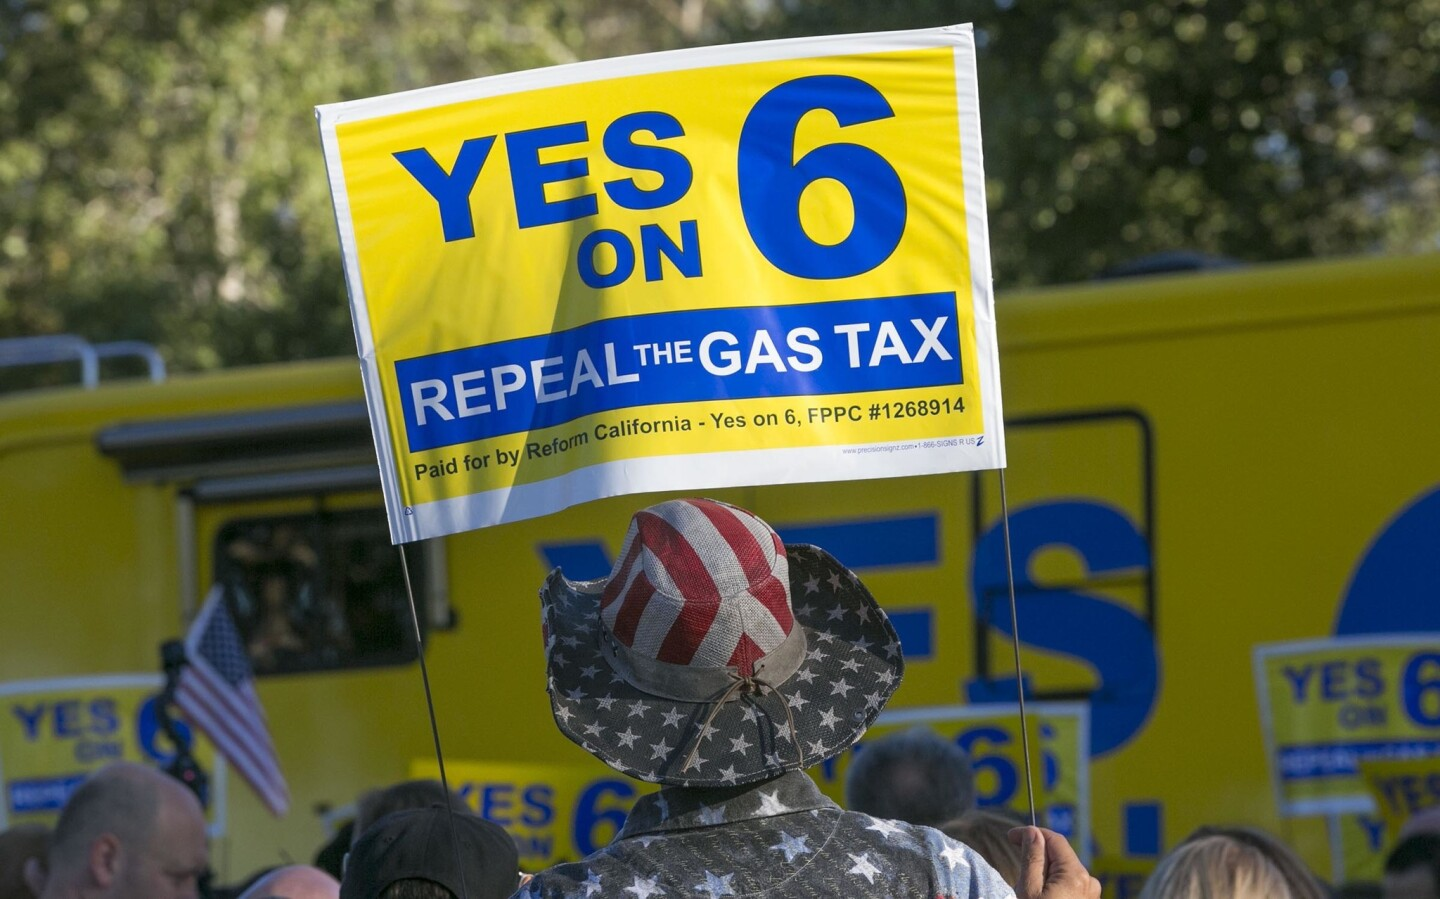 Yes on Prop 6 rally